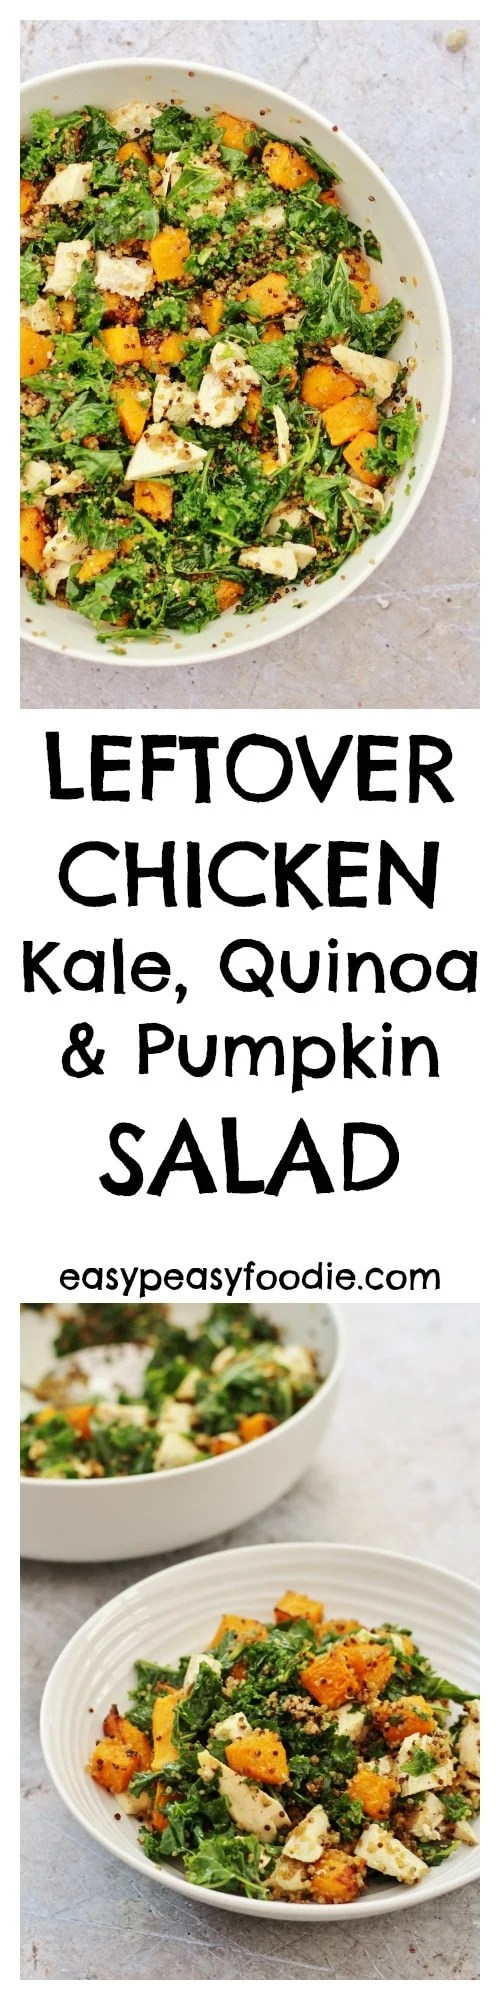 Delicious, easy and healthy, this Chicken, Kale, Quinoa and Pumpkin Salad is the perfect way to use up leftover chicken and makes an excellent lunch – you will be the envy of all your colleagues when you turn up at the office with this. No pumpkin? Don't worry - this can easily be made with butternut squash too! #chicken #pumpkin #quinoa #kale #salad #under30minutes #leftovers #butternutsquash #autumn #fall